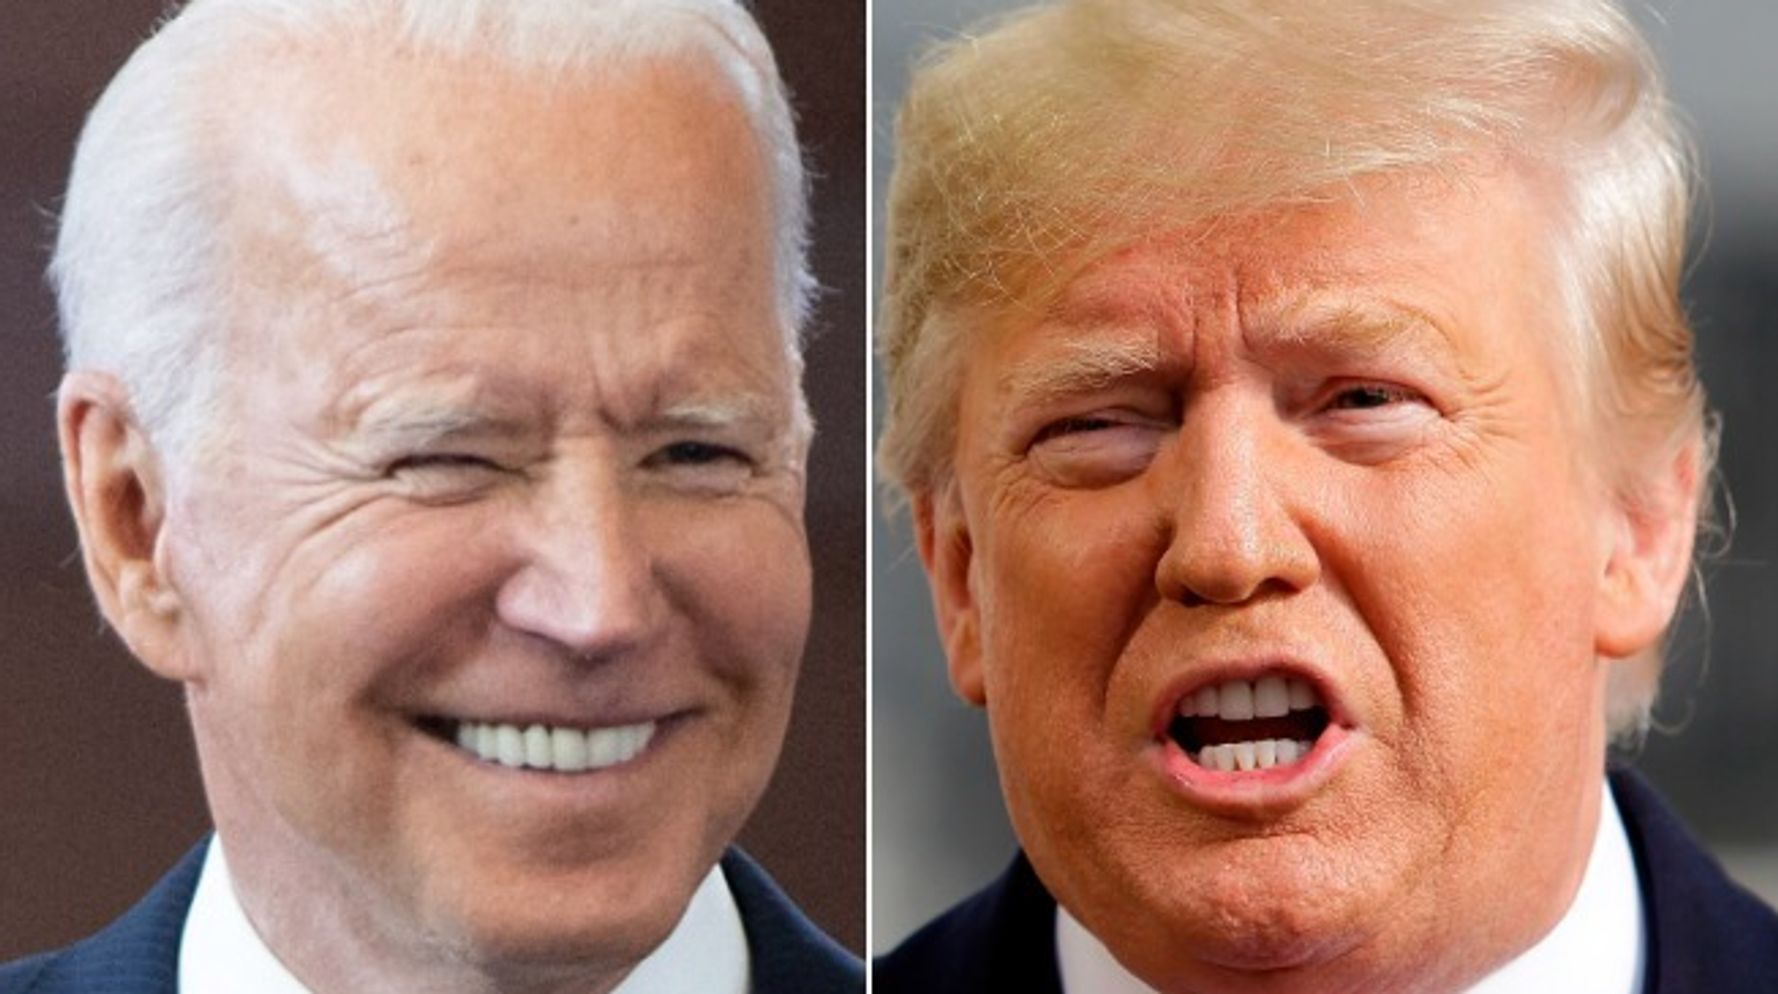 Joe Biden Subtly Shades Trump In Just 3 Words And Twitter Users Love It